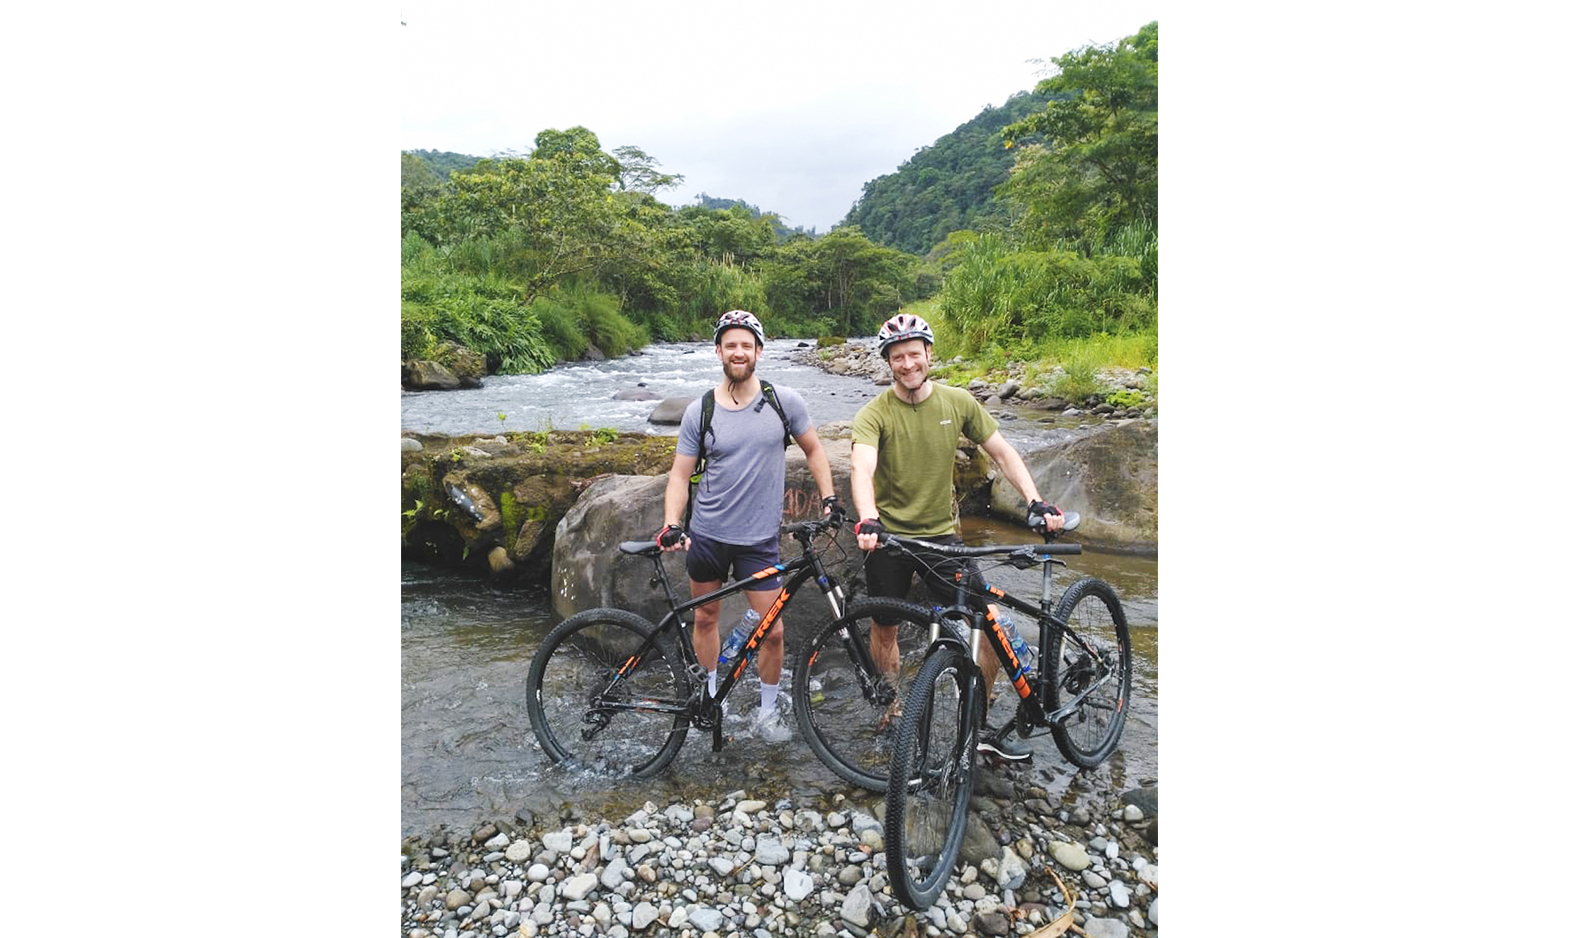 Biking in Costa Rica is a great way to experience its amazing natural features such as tranquil countrysides, rolling green hills, vibrant forests and adventurous mountain trails